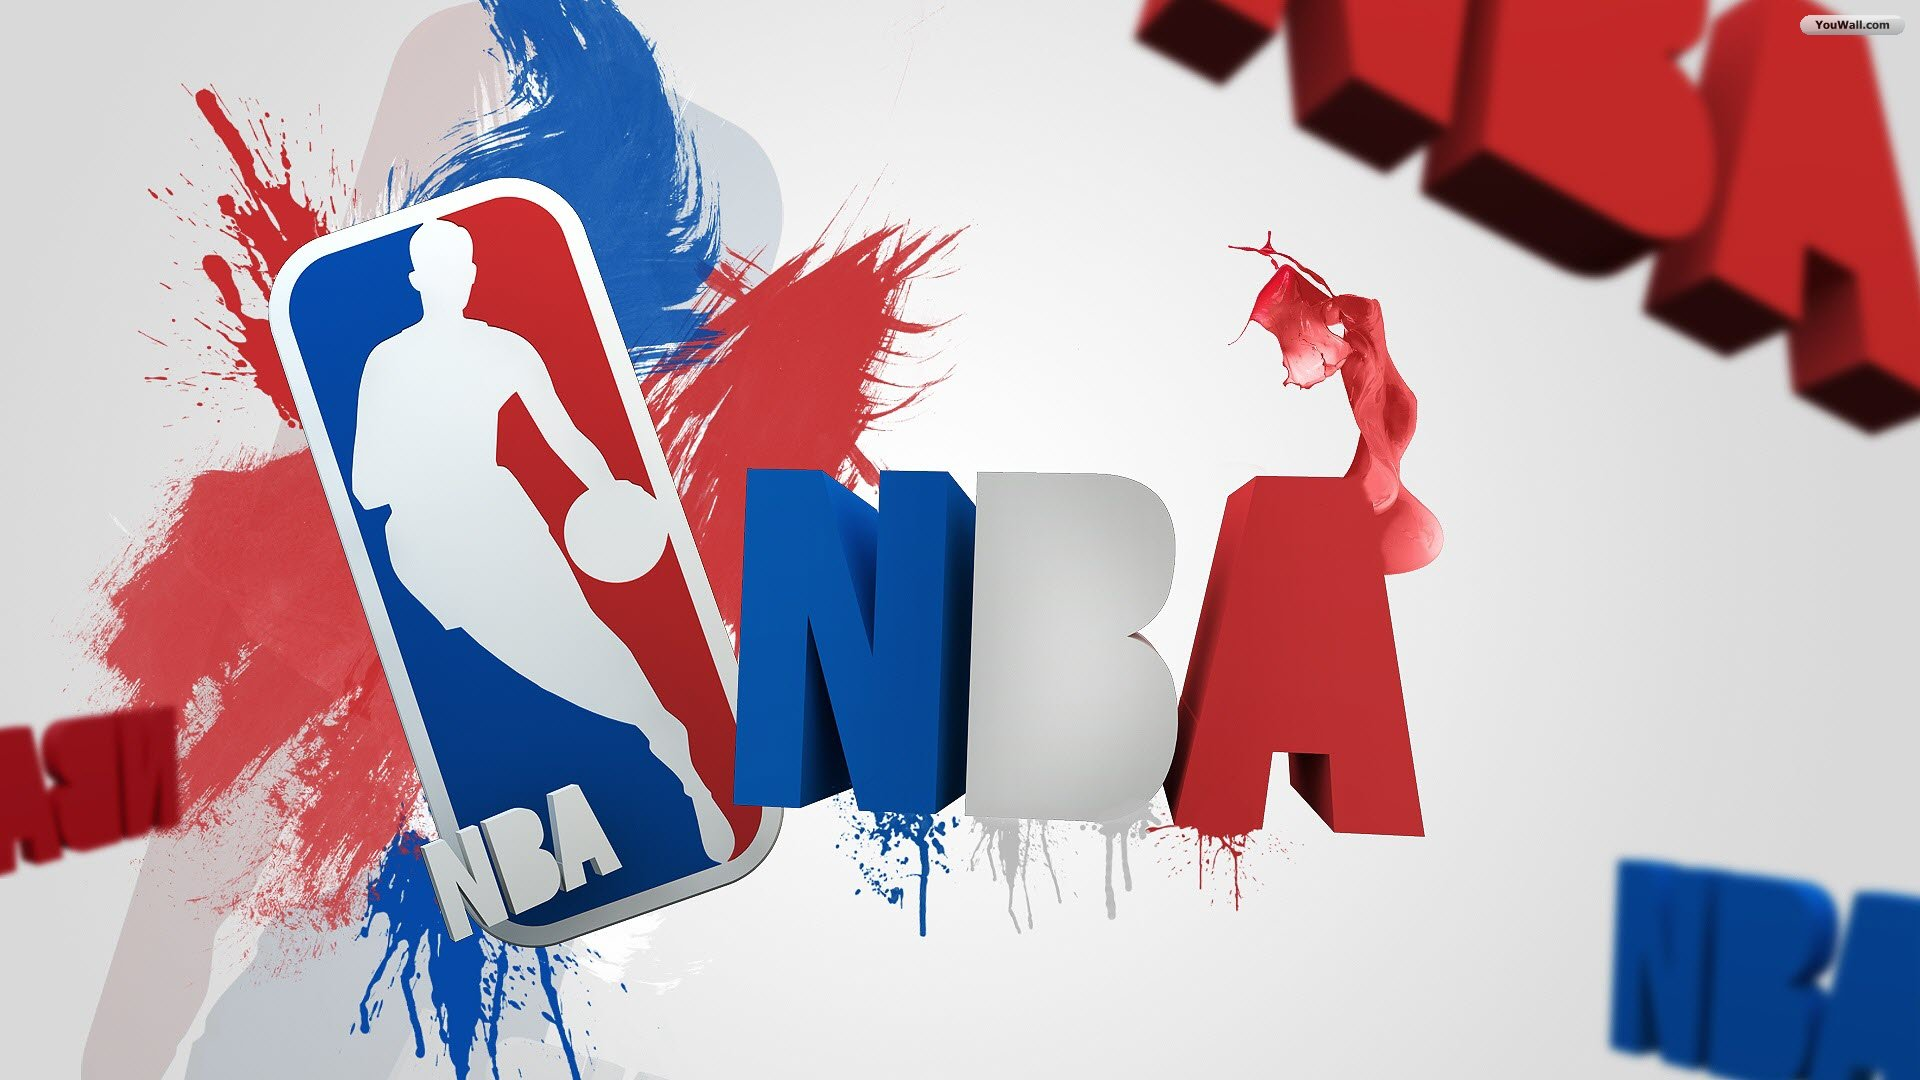 the national basketball association is cool whether it was dr j 1920x1080